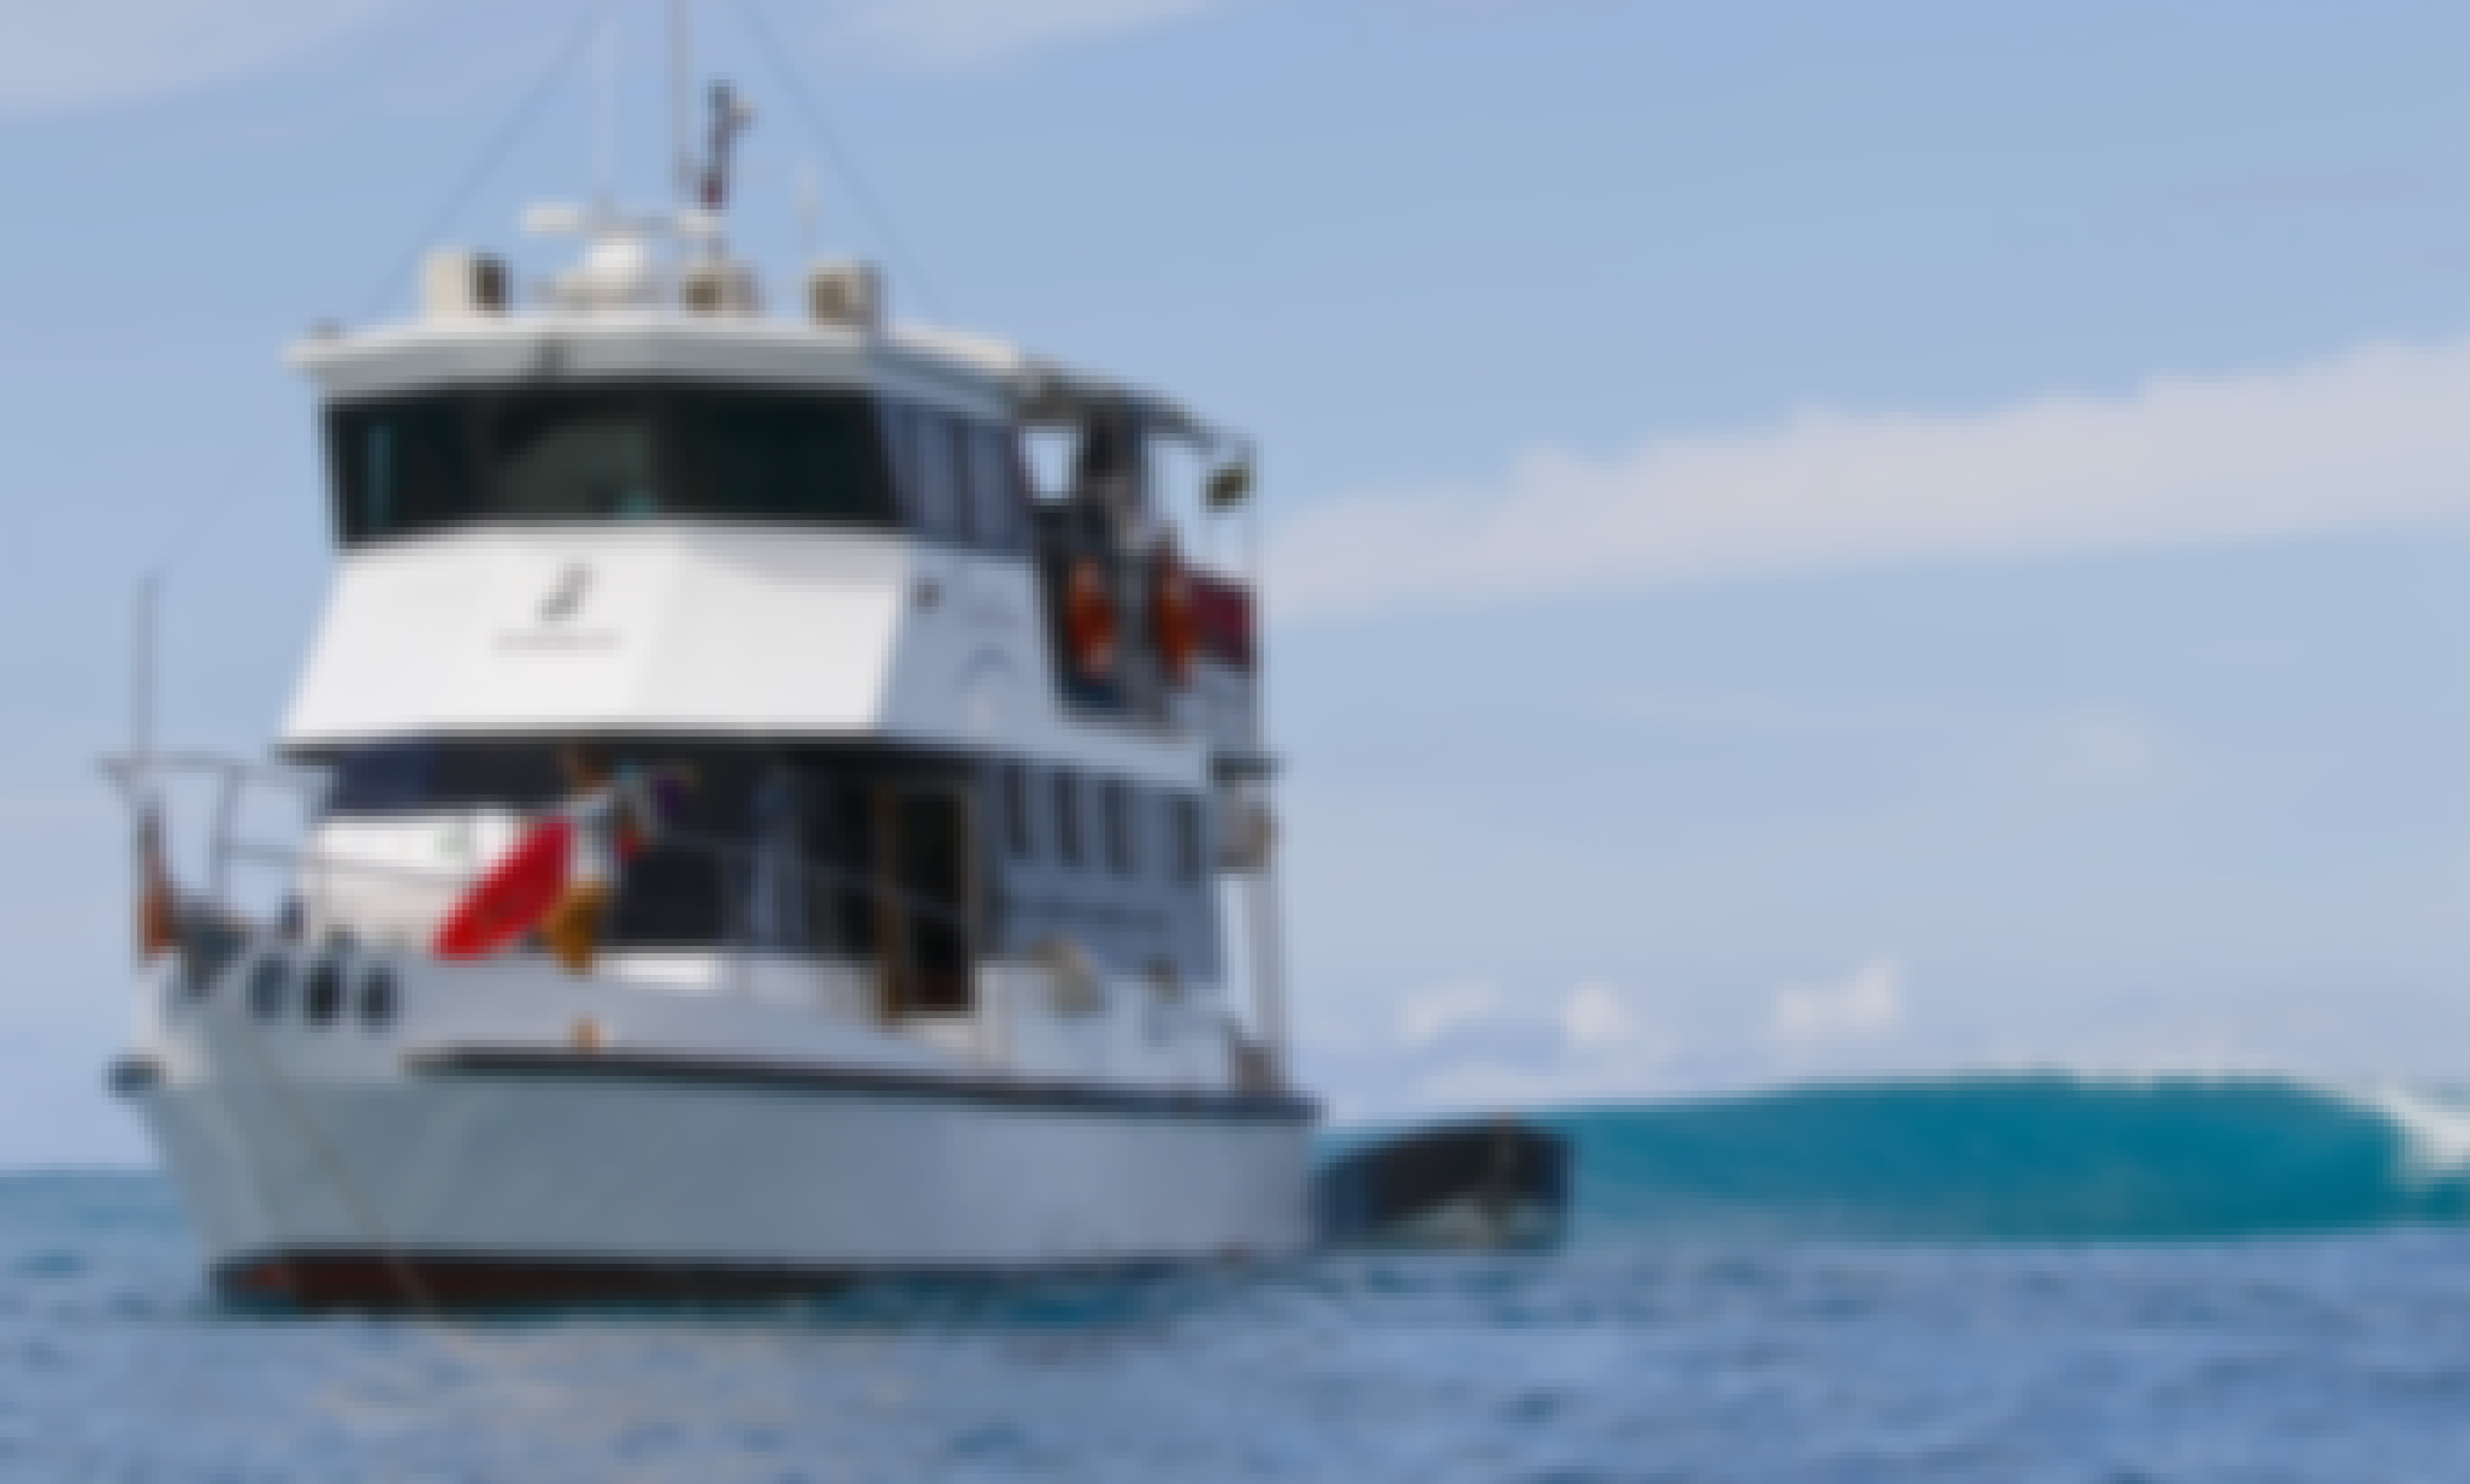 Enjoy Surf Charter in Padang, Indonesia on 59' Swell Lines Power Mega Yacht